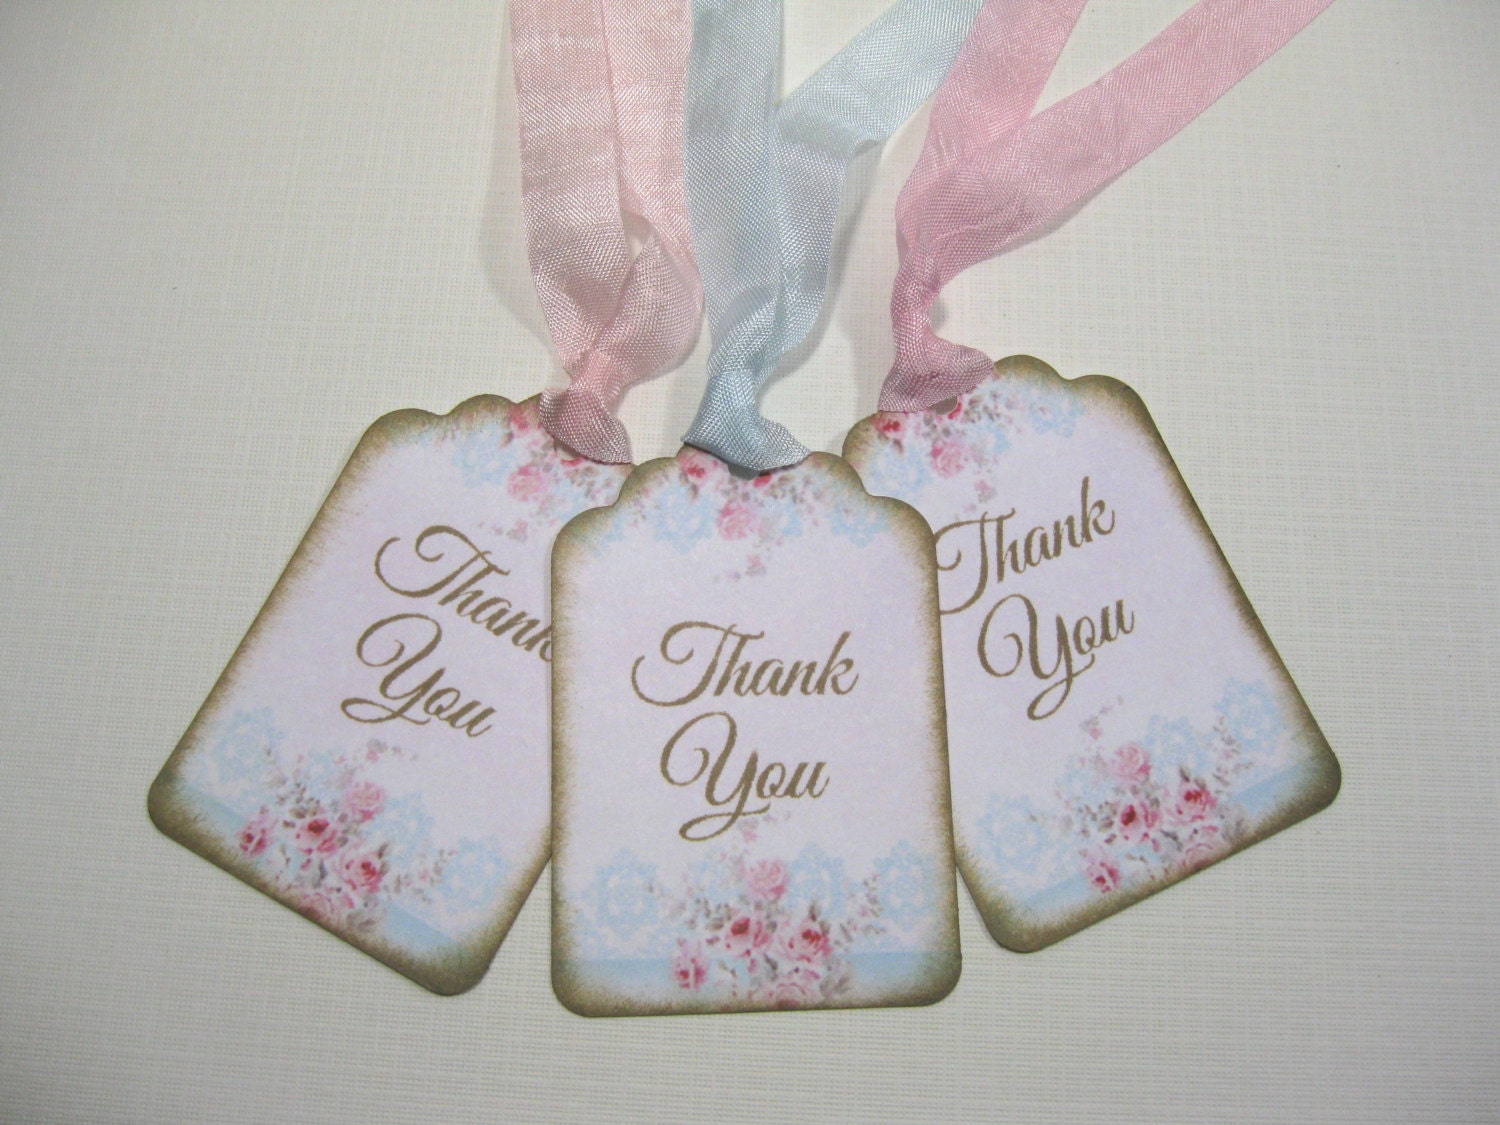 10 Wedding Tags for Favors Pink Marie Antoinette Tags